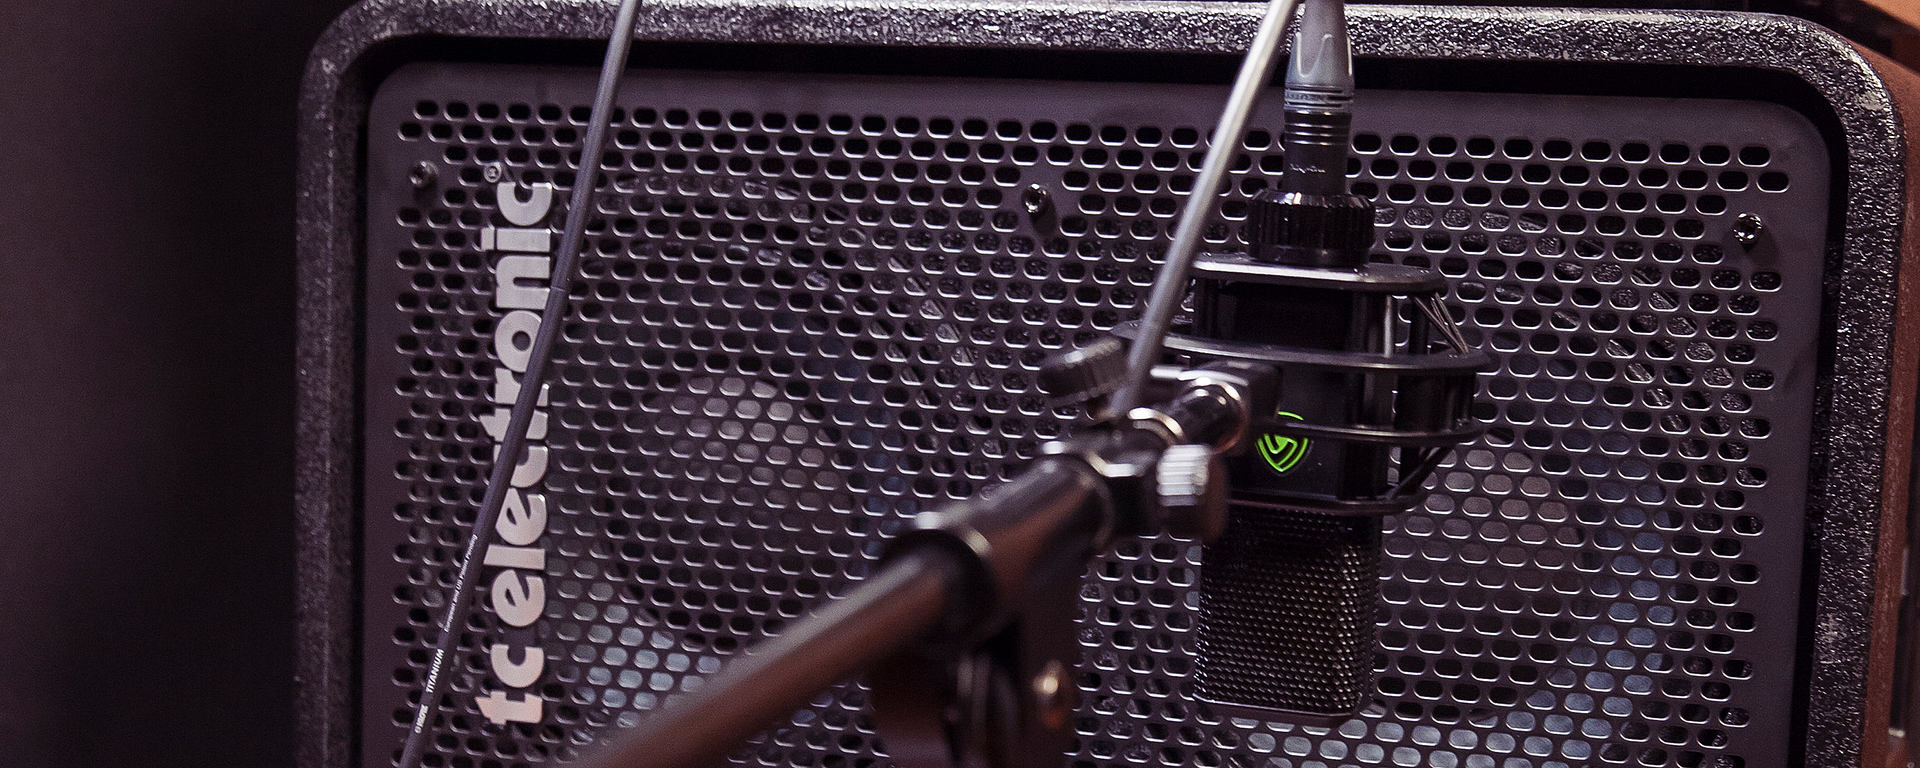 LCT 840 tube microphone